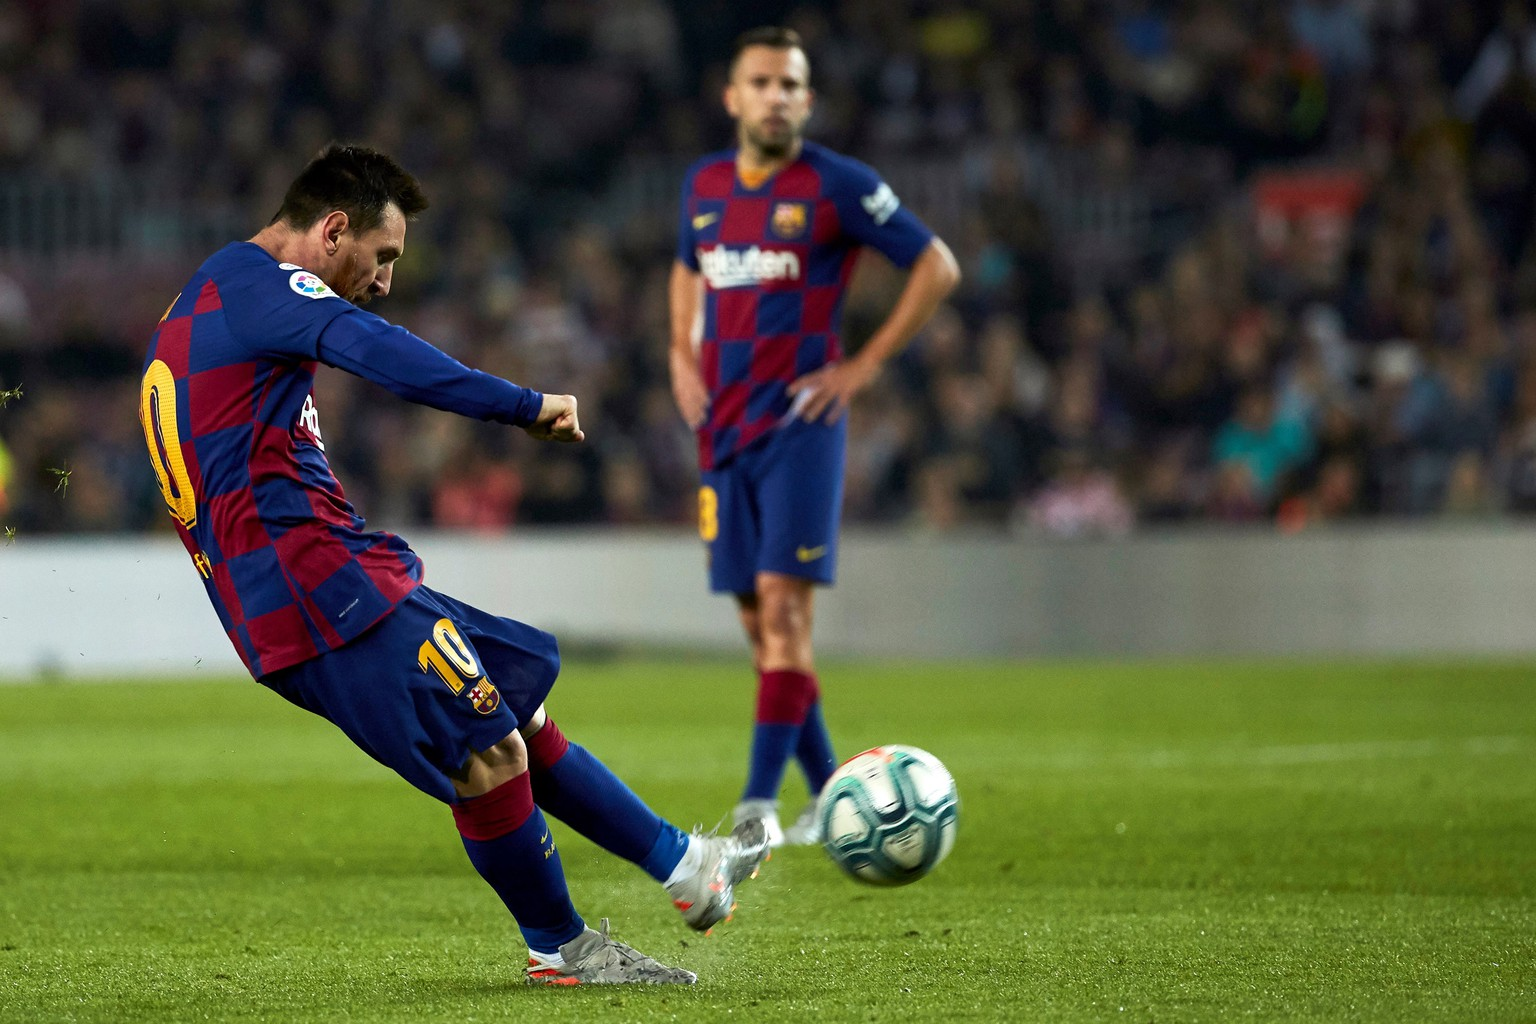 epa07958678 FC Barcelona's Lionel Messi shoots to score the 3-1 lead during a Spanish LaLiga soccer match between FC Barcelona and Real Valladolid at the Camp Nou stadium in Barcelona, Spain, 29 October 2019.  EPA/Alejandro Garcia